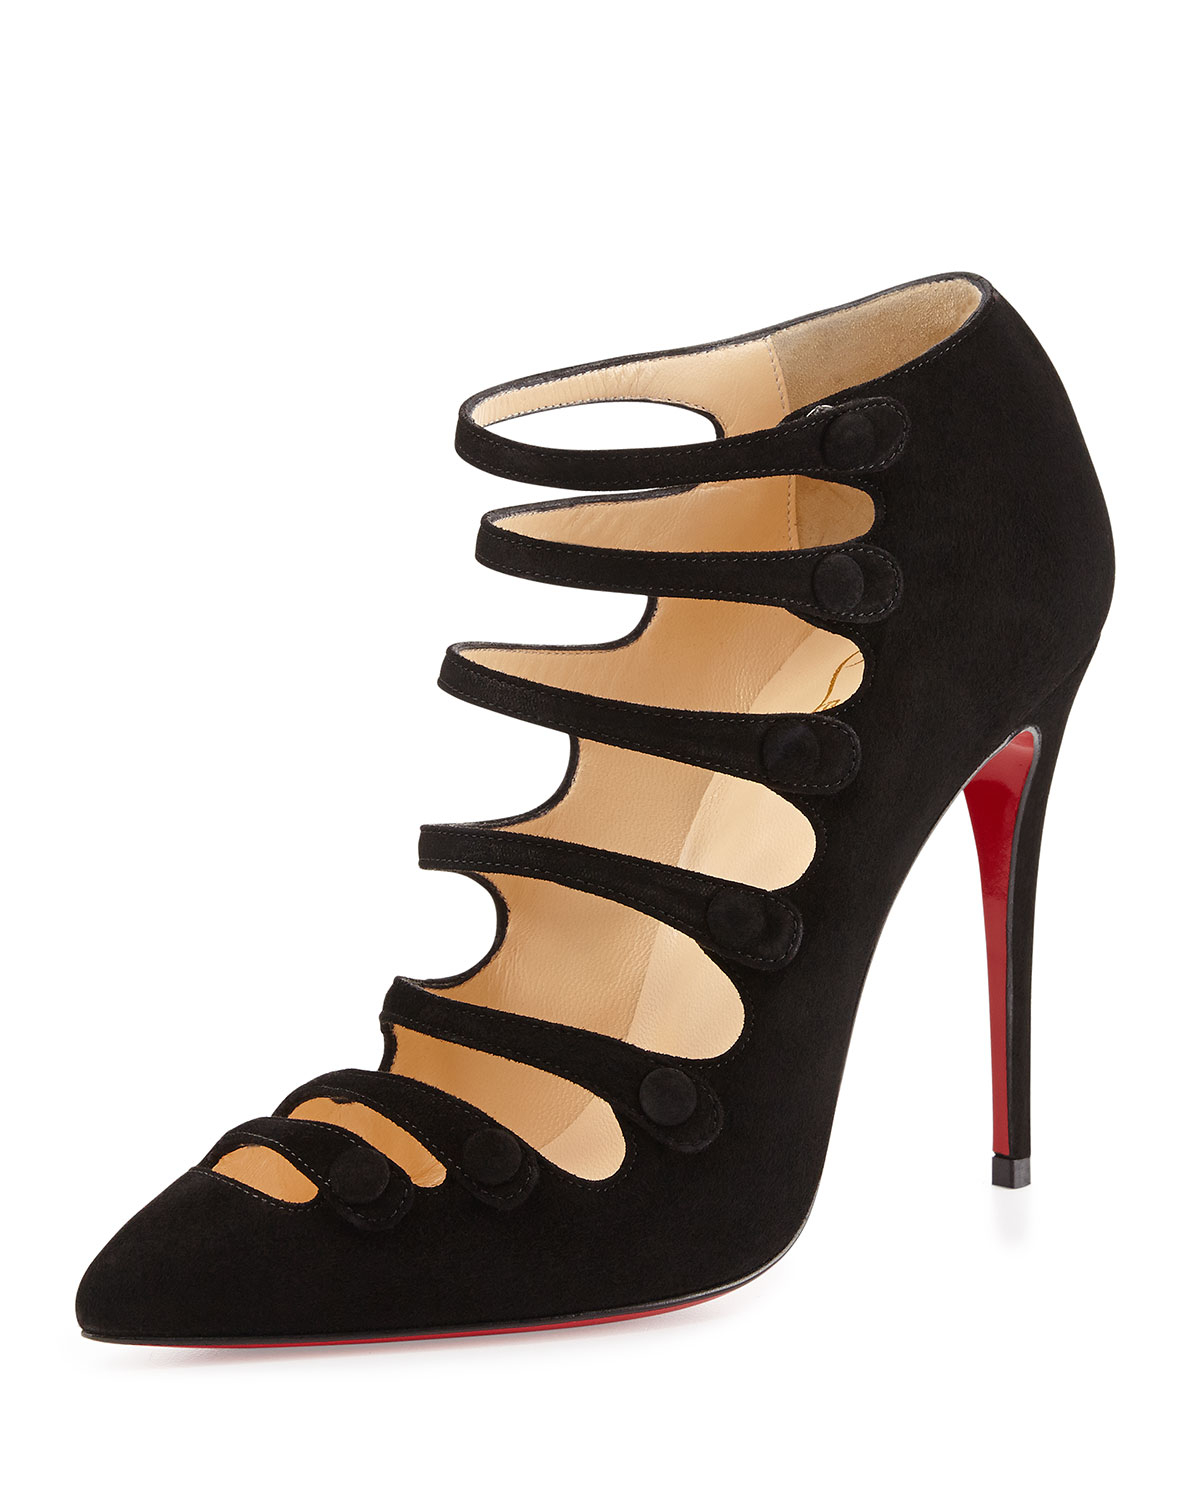 Christian louboutin Viennana Suede Red Sole Bootie in Black   Lyst